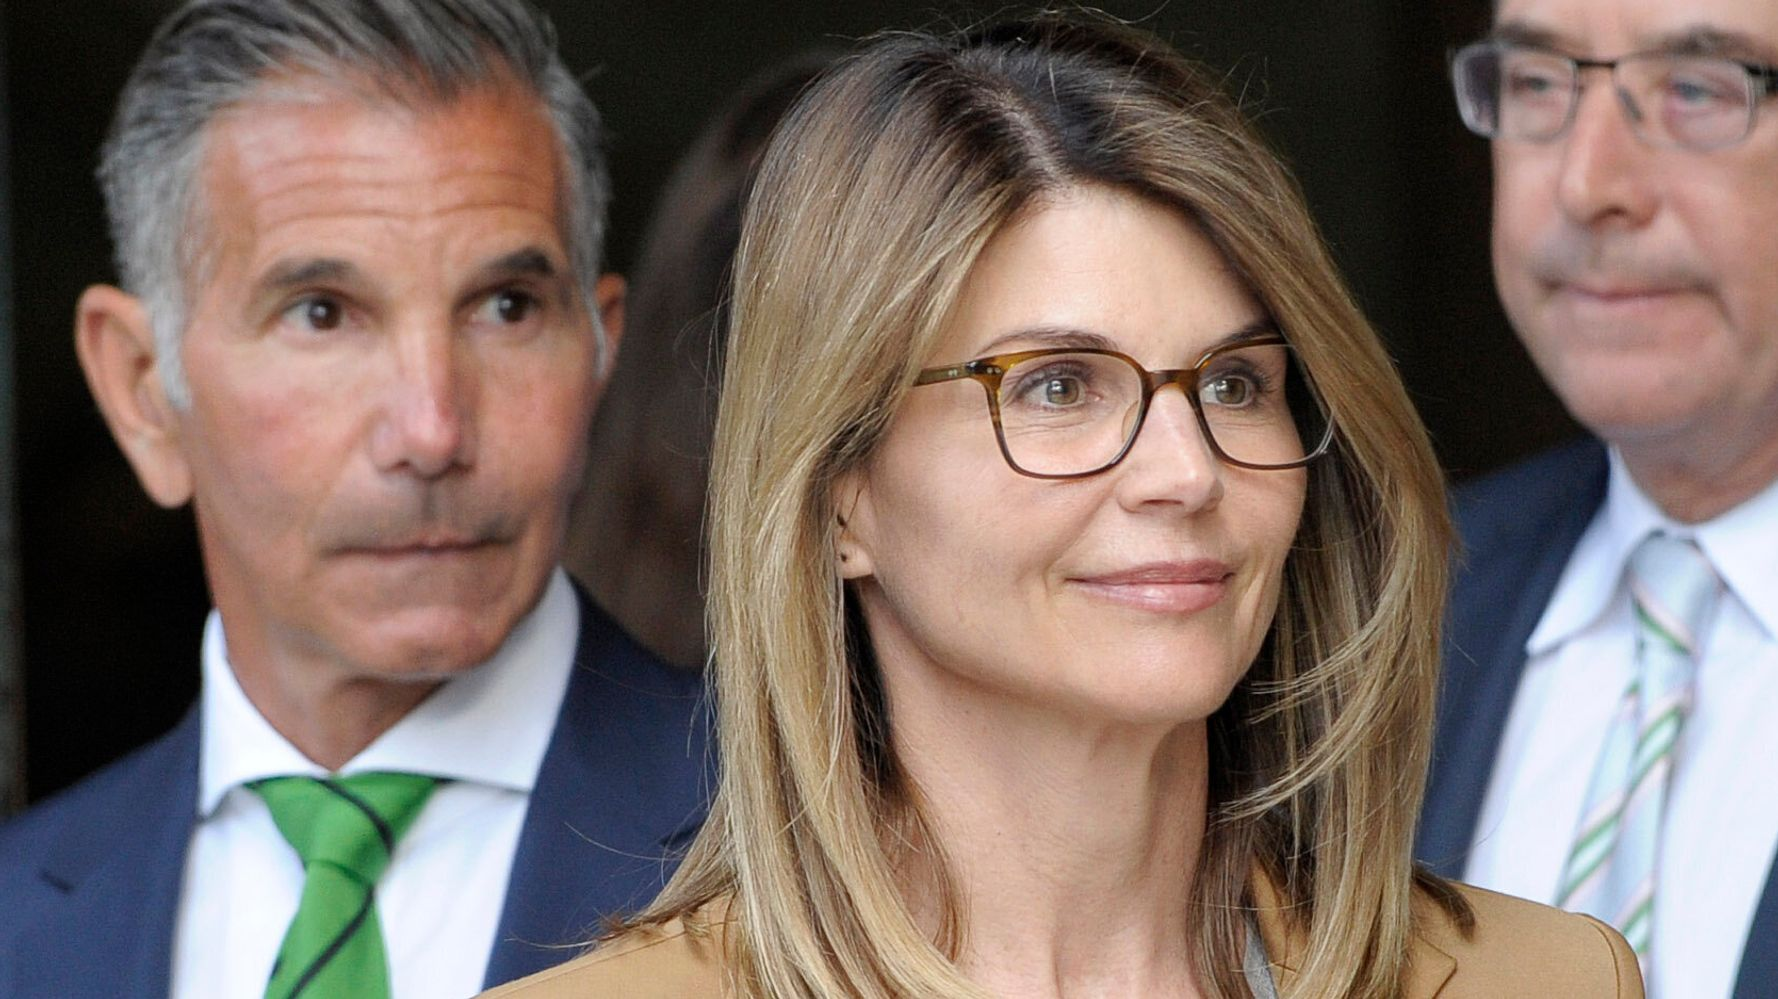 Westlake Legal Group 5d9c4ace200000d0024f33d0 U.S. Attorney Has An Ominous Warning For Lori Loughlin About Prison Time